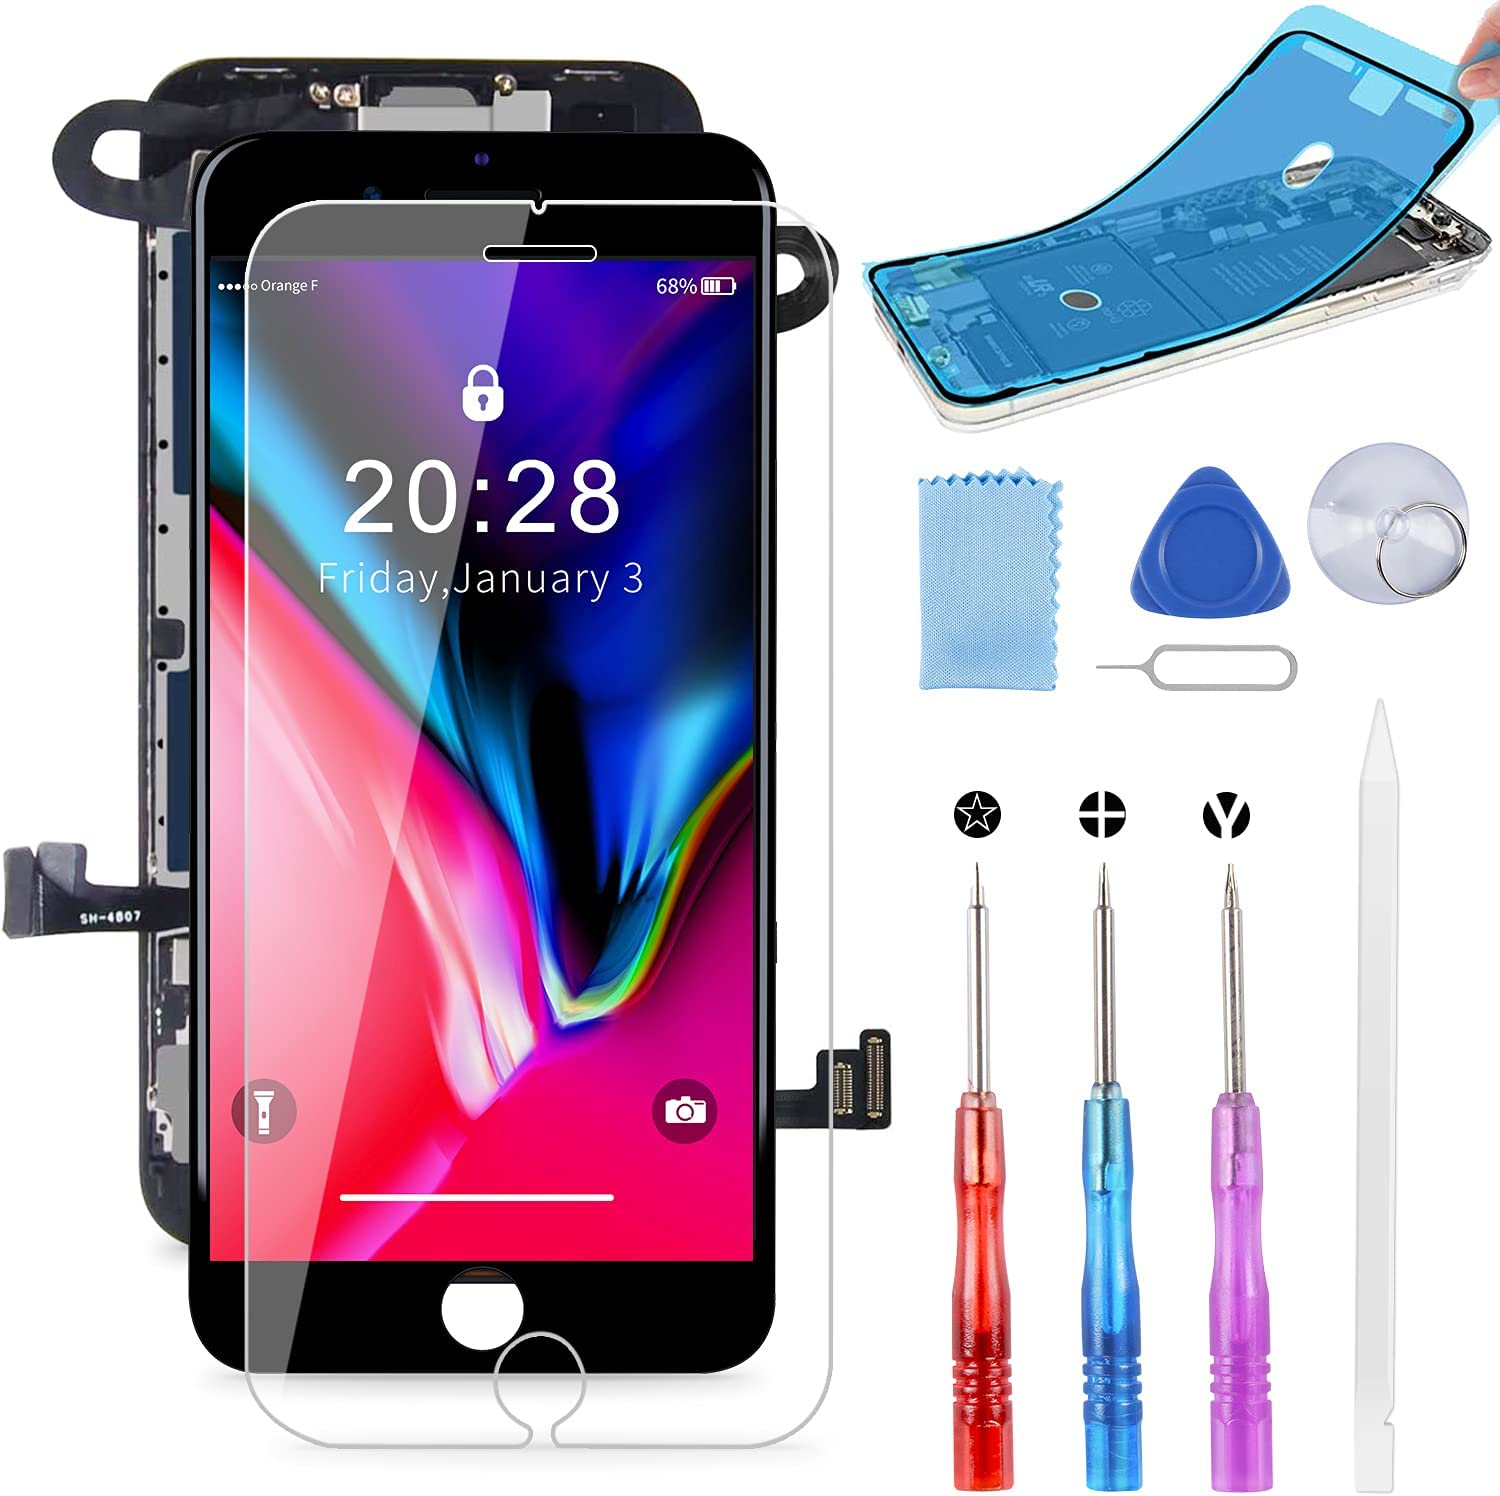 BeeFix ! Super beauty product restock quality top! for iPhone 8 Screen Cheap bargain Replacement Touch 4.7 3D Black L Inch